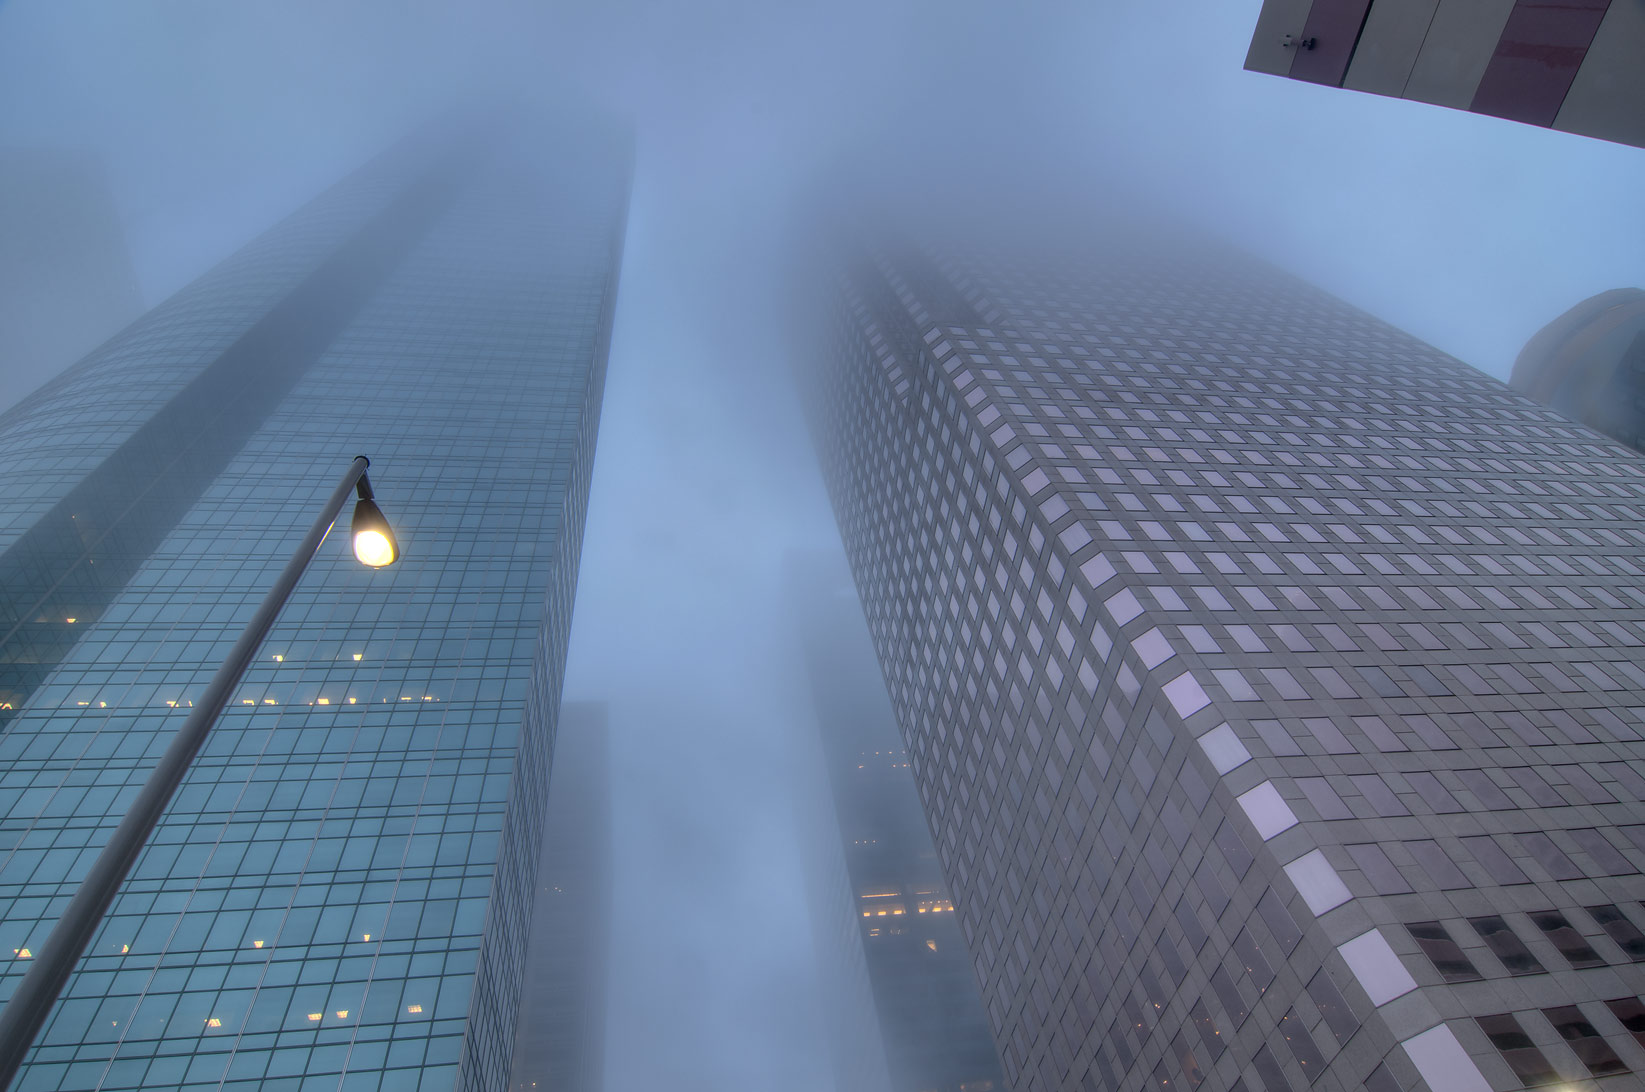 Buildings in downtown in fog. Houston, Texas